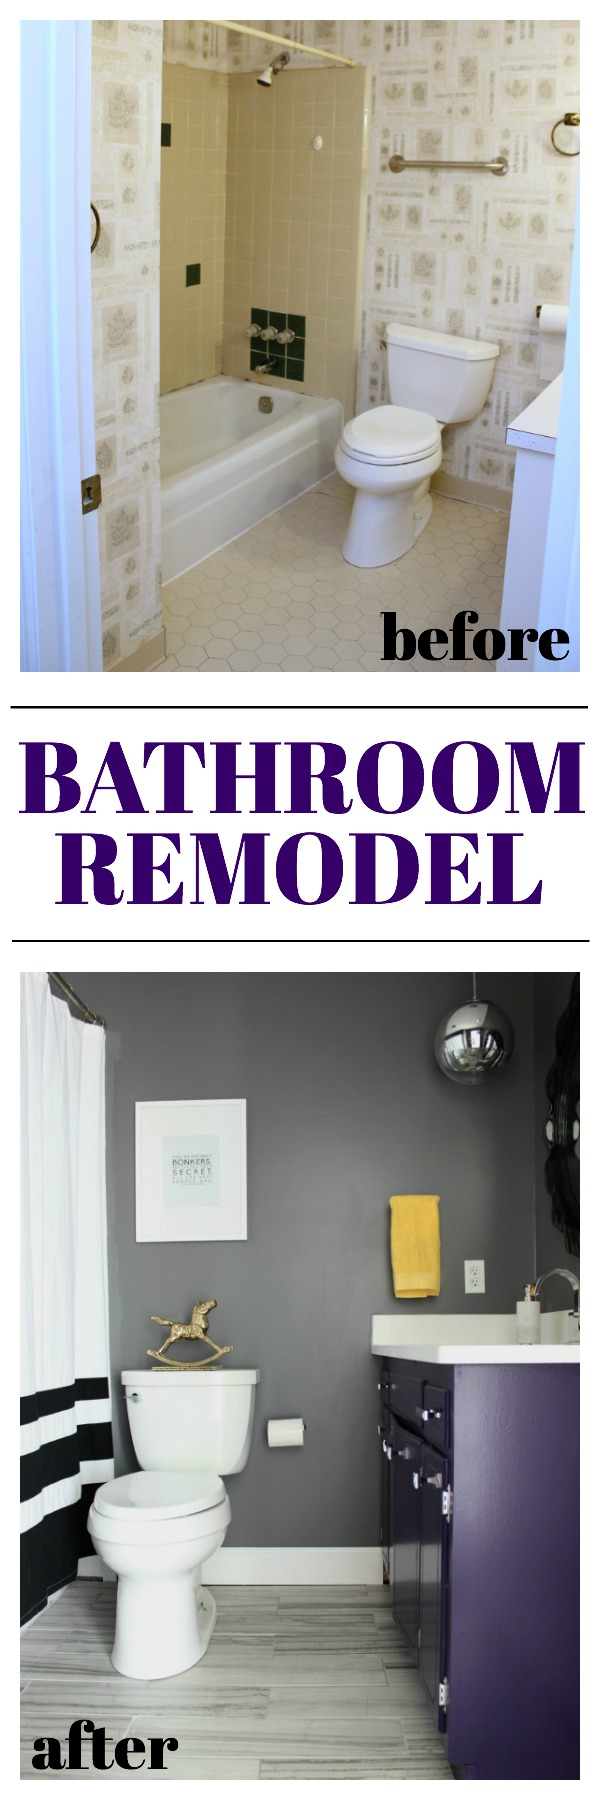 70's House Bathroom Remodel | Gray Bathroom Remodel | Kid's Bathroom Ideas | DIY Bathroom Renovation | Bathroom Ideas